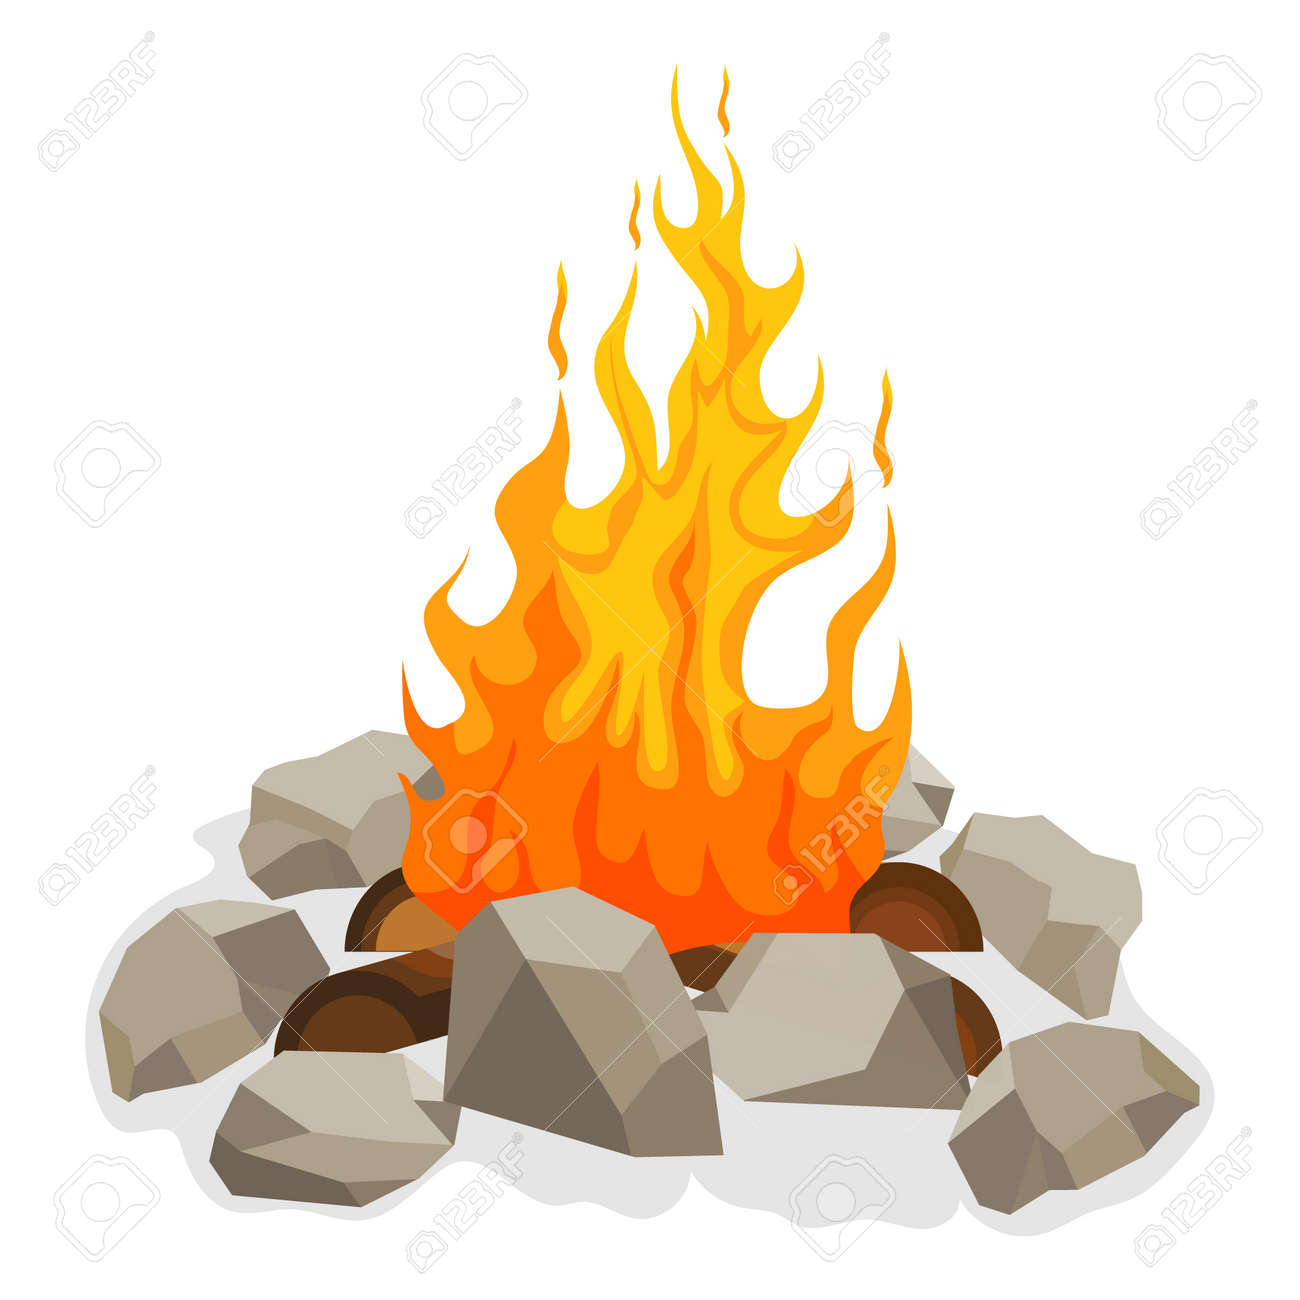 Bonfire, bonfire icon with fire, wood and stones around it. Vector illustration. Vector. - 162890901